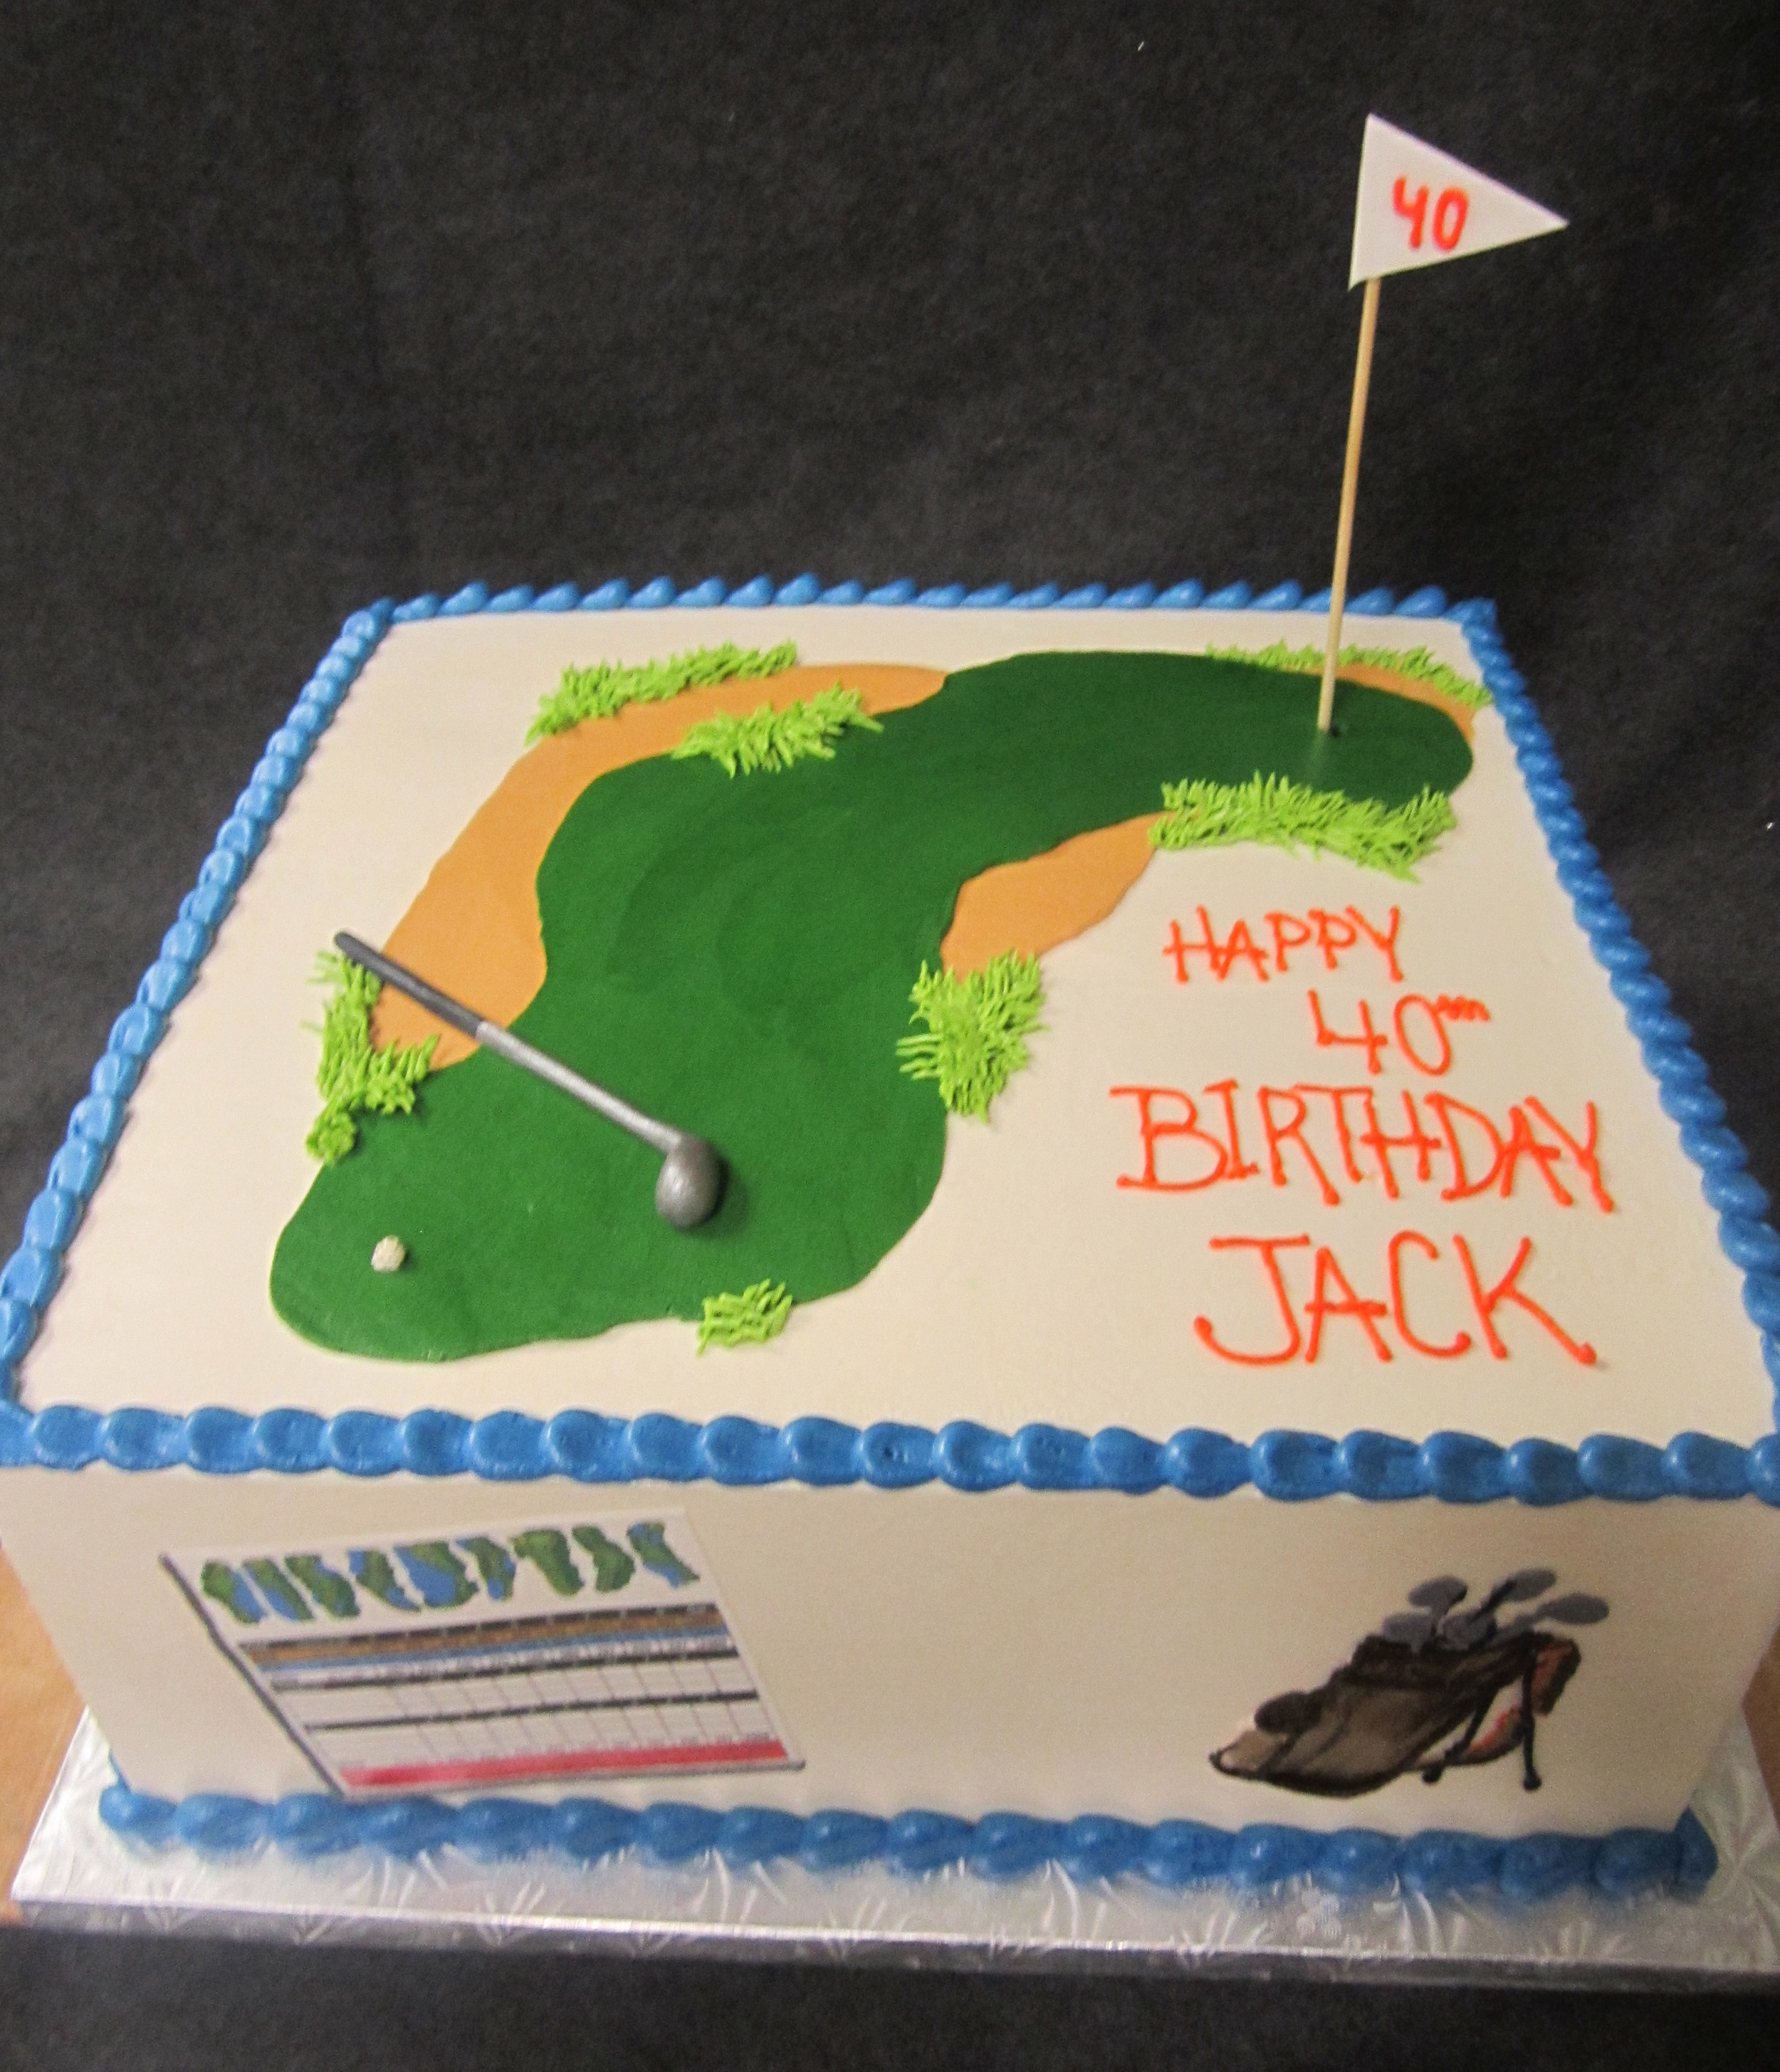 golf green with flag sand and images.jpg